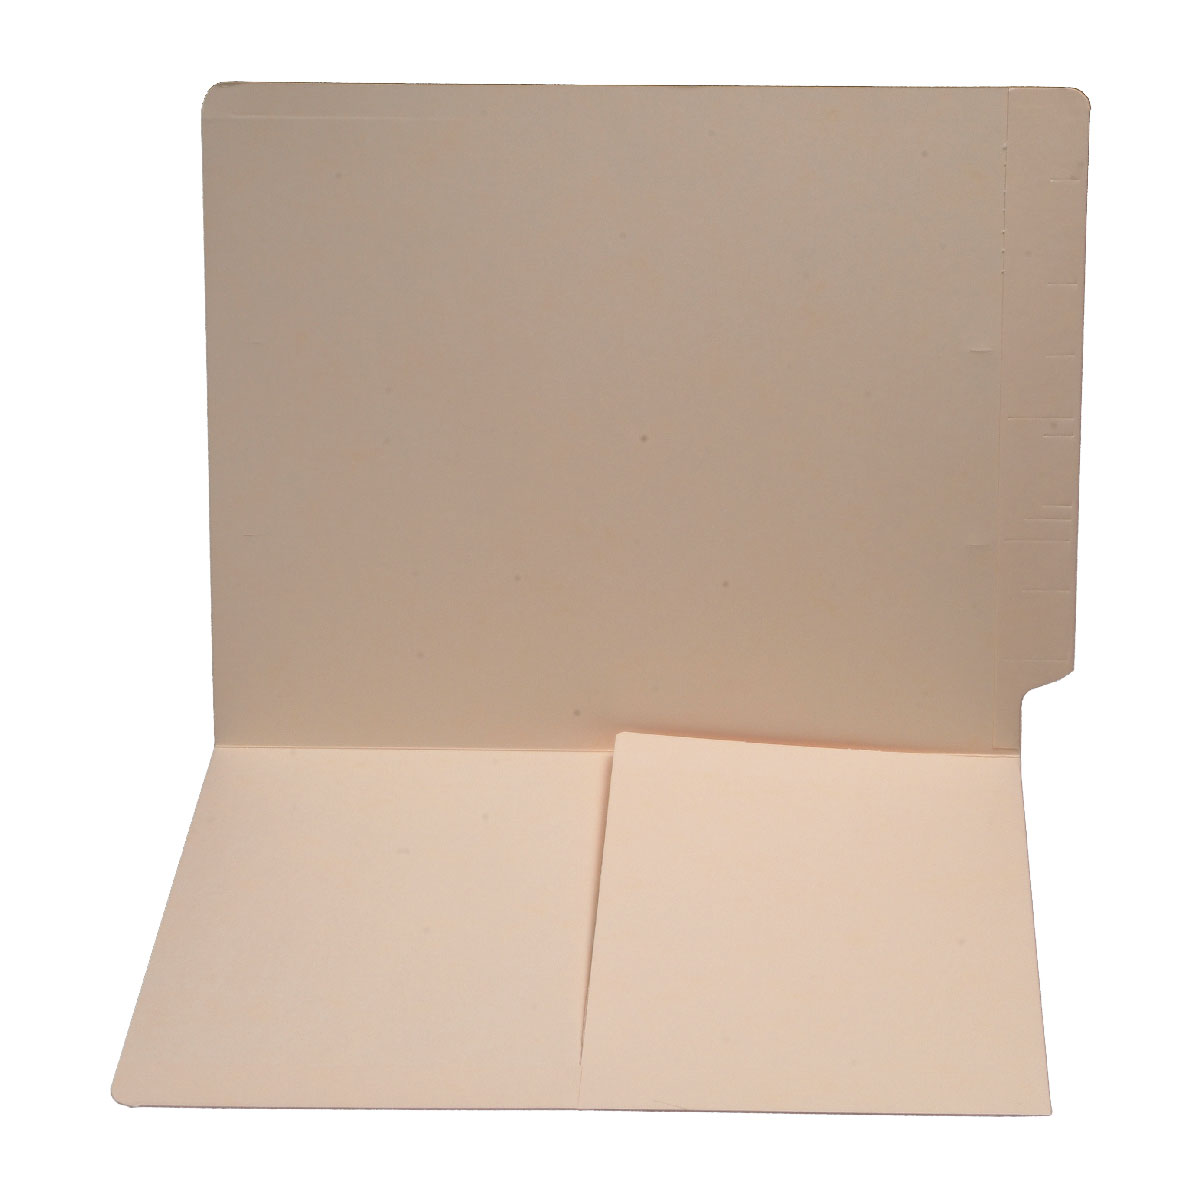 S-9009 - 14 pt Manila Folders, Full Cut End Tab, Letter Size, 1/2 Pocket Inside Front (Box of 50)